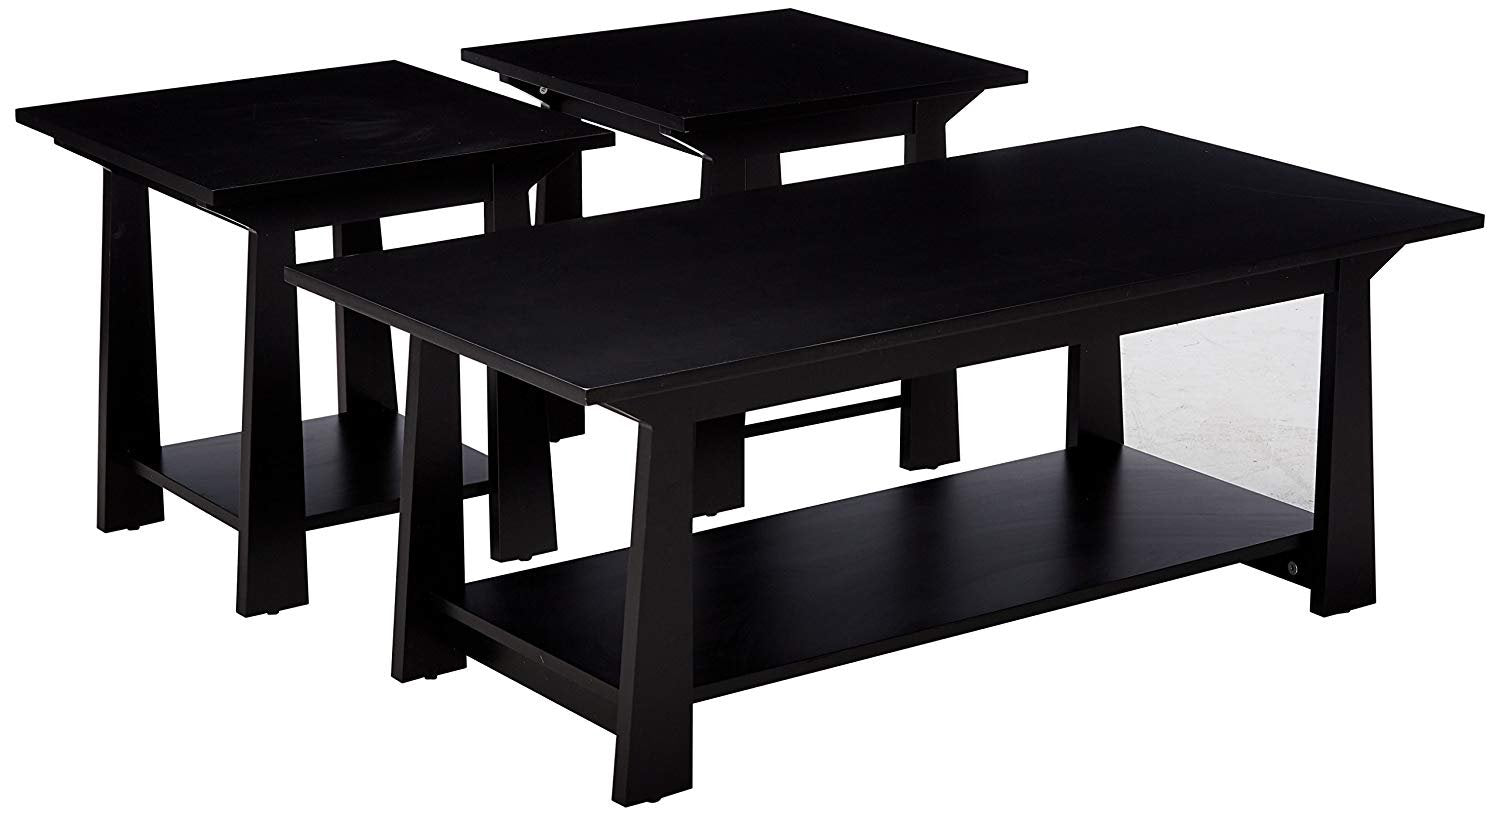 Incredible Sally 3 Piece Coffee Table Set Black Wood With Storage Short Links Chair Design For Home Short Linksinfo